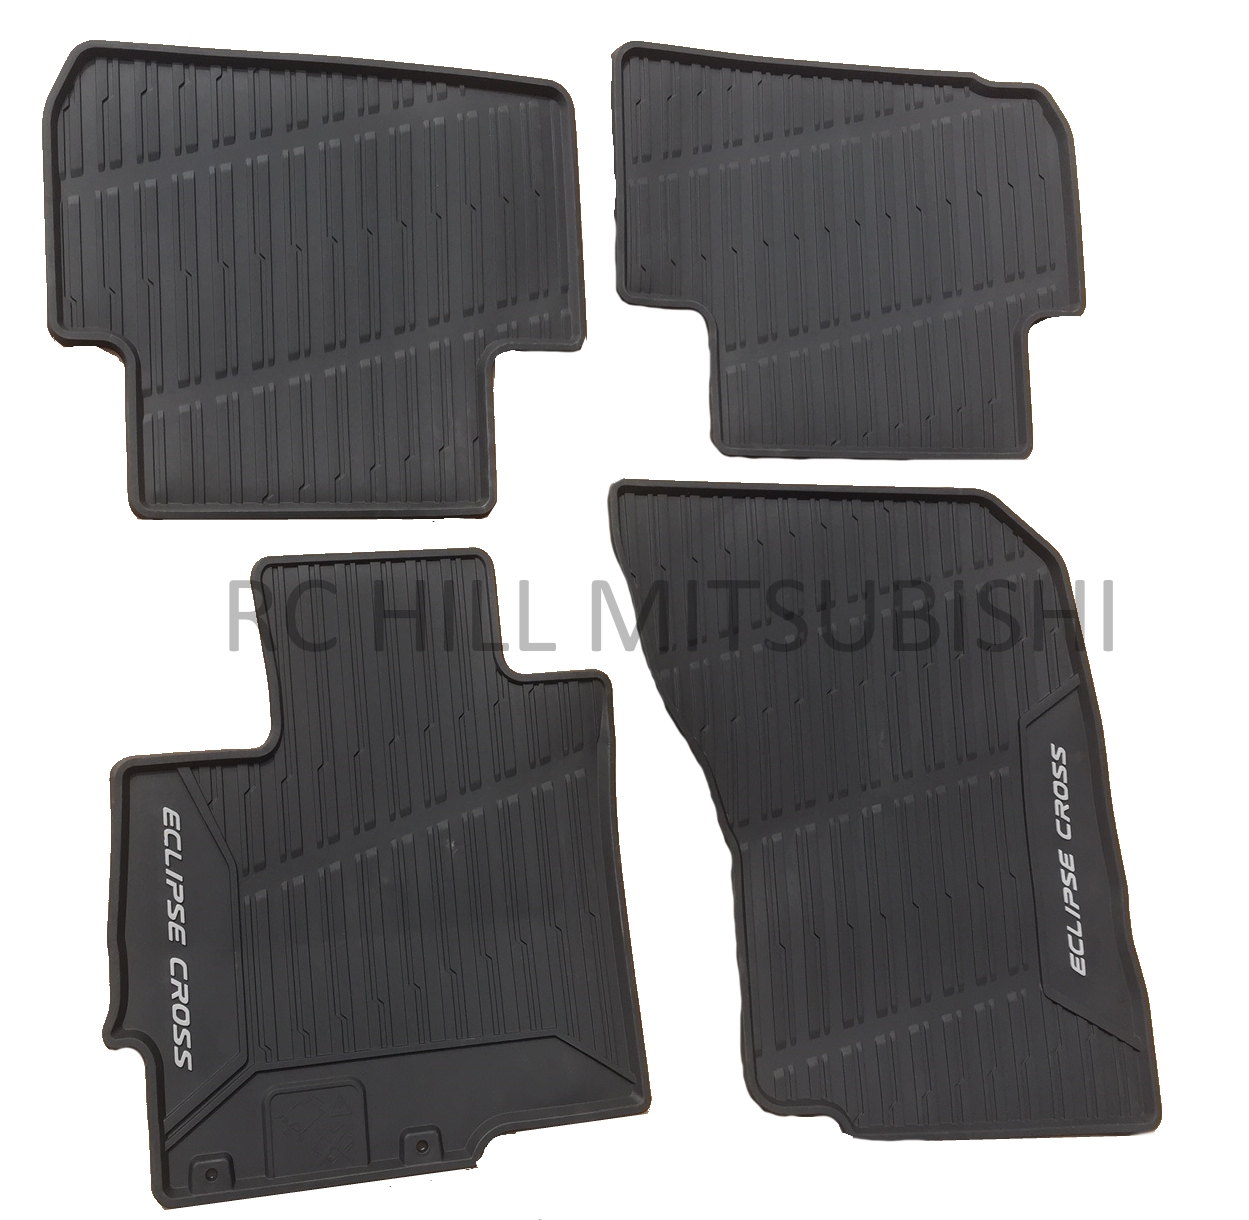 FREE SHIPPING to cont. US! MZ314979 ECLIPSE CROSS ALL WEATHER MATS